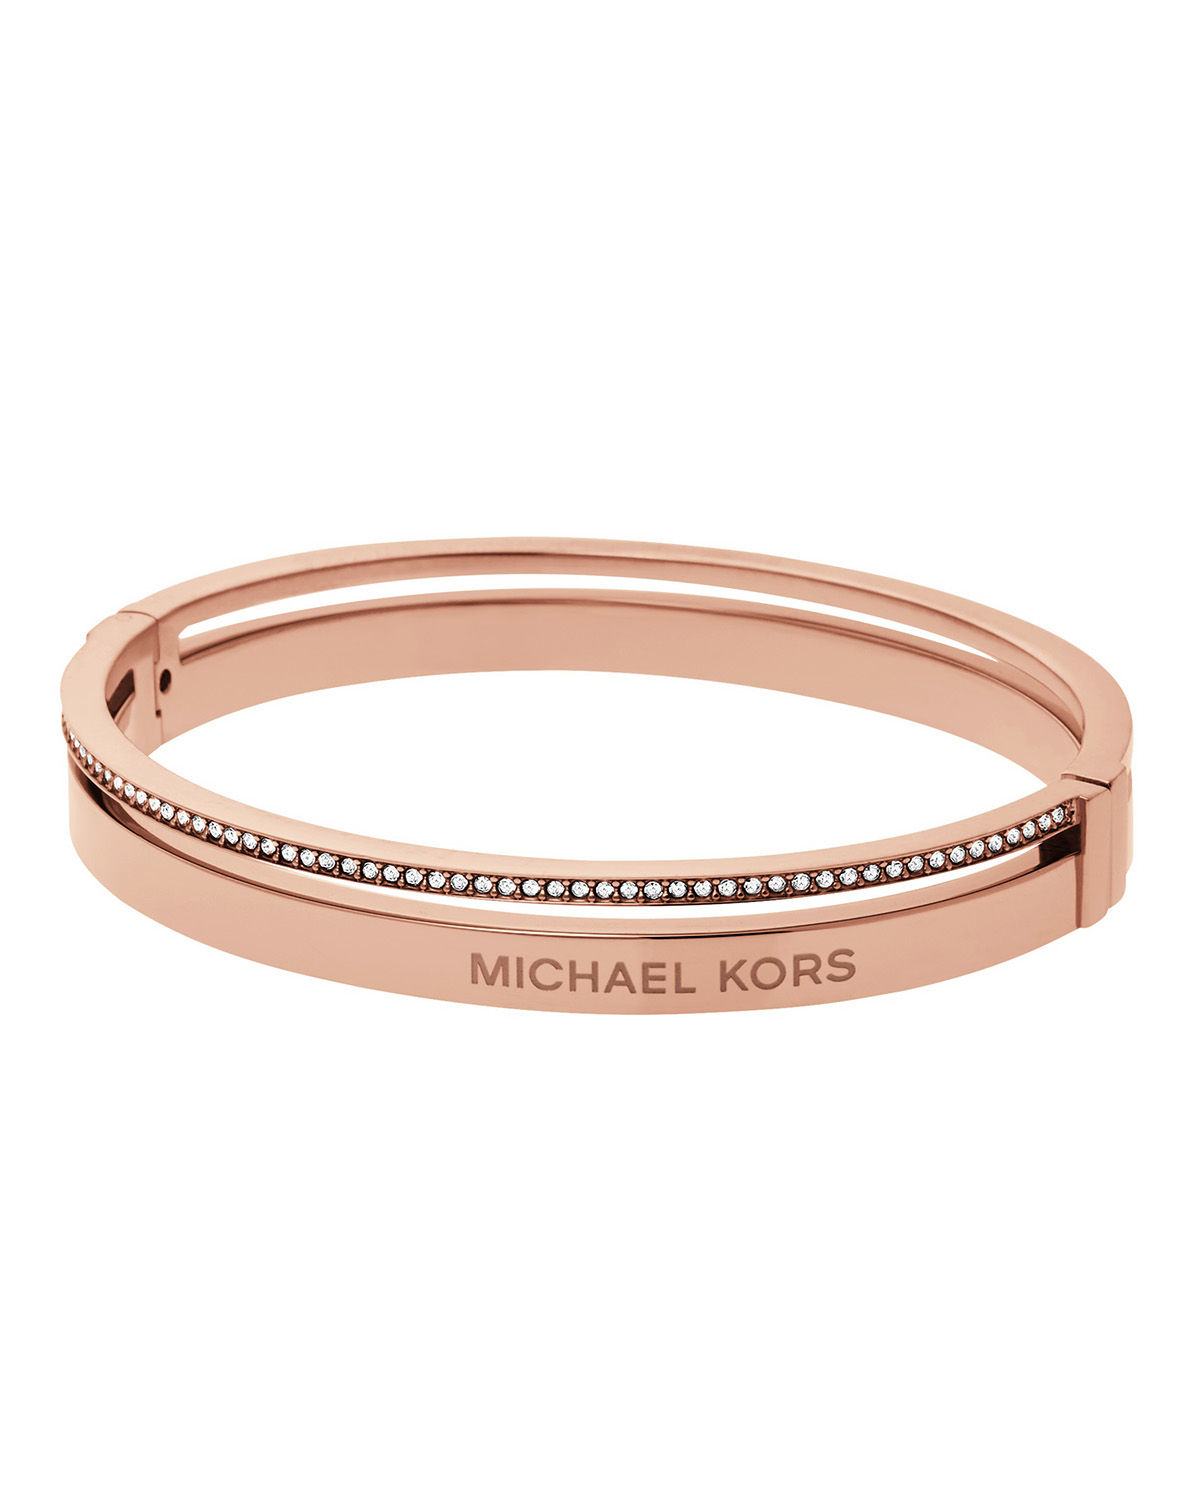 michael kors steel logo bangle bracelet in pink lyst. Black Bedroom Furniture Sets. Home Design Ideas